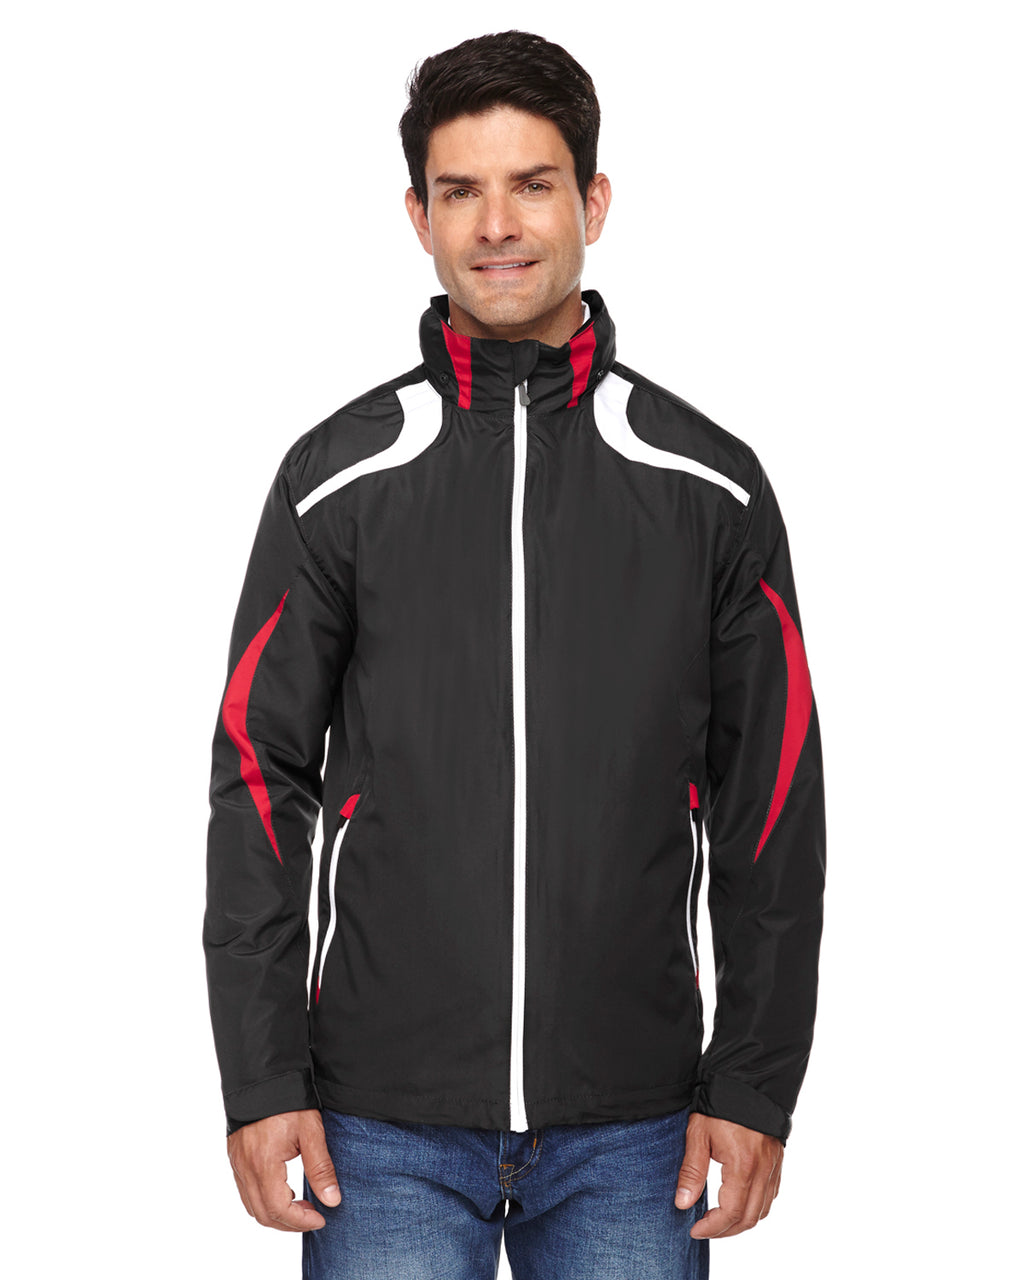 88644 Ash City - North End Men's Impact Active Lite Colorblock Jacket